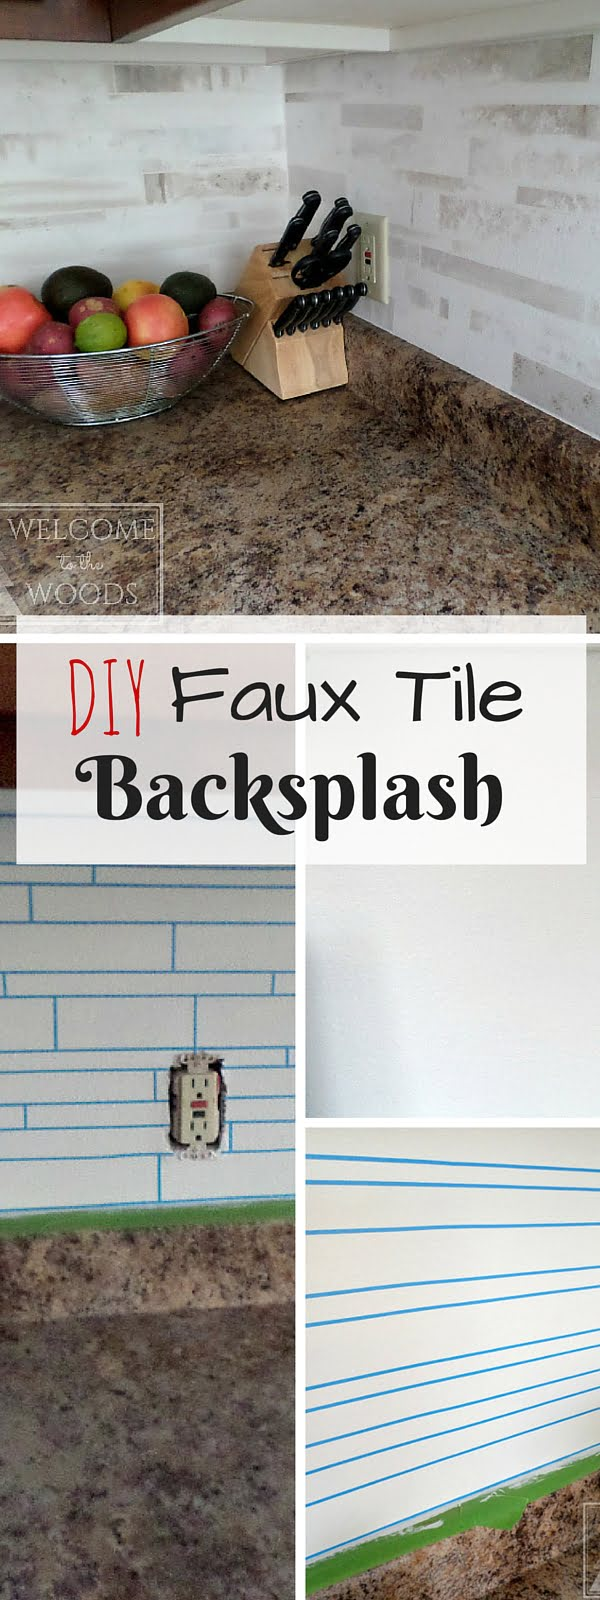 Check out the tutorial: #DIY Faux Tile Backsplash #homedecor